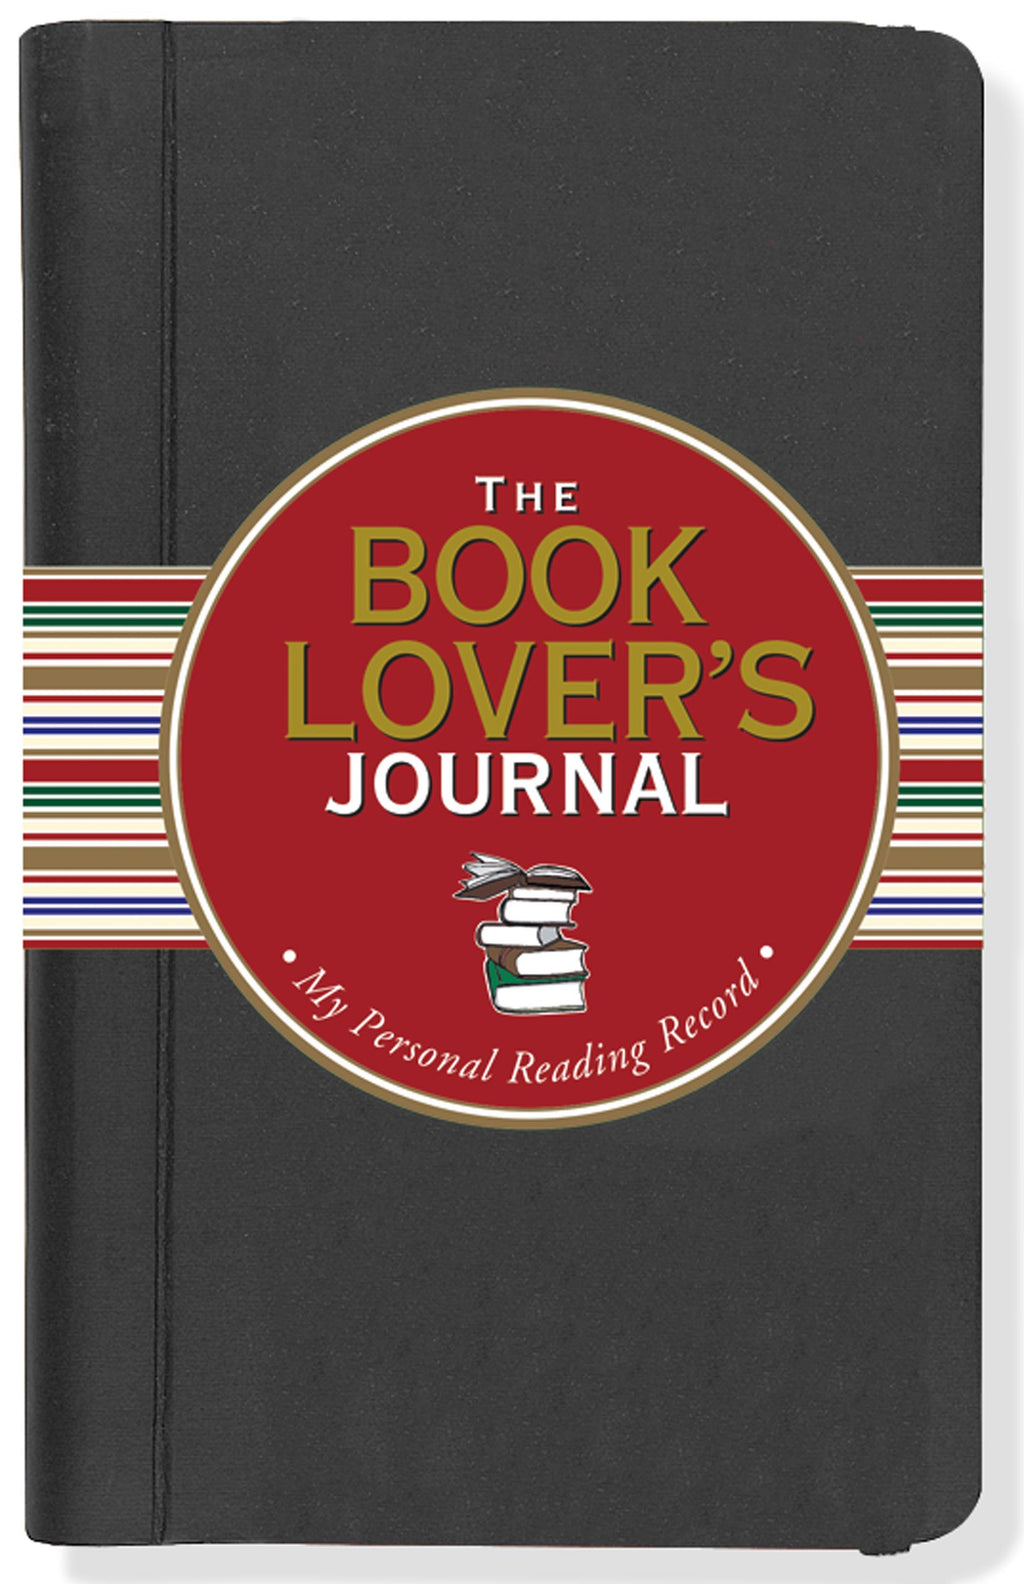 The Book Lover's Journal-Journal-Peter Pauper Press-The Library Marketplace